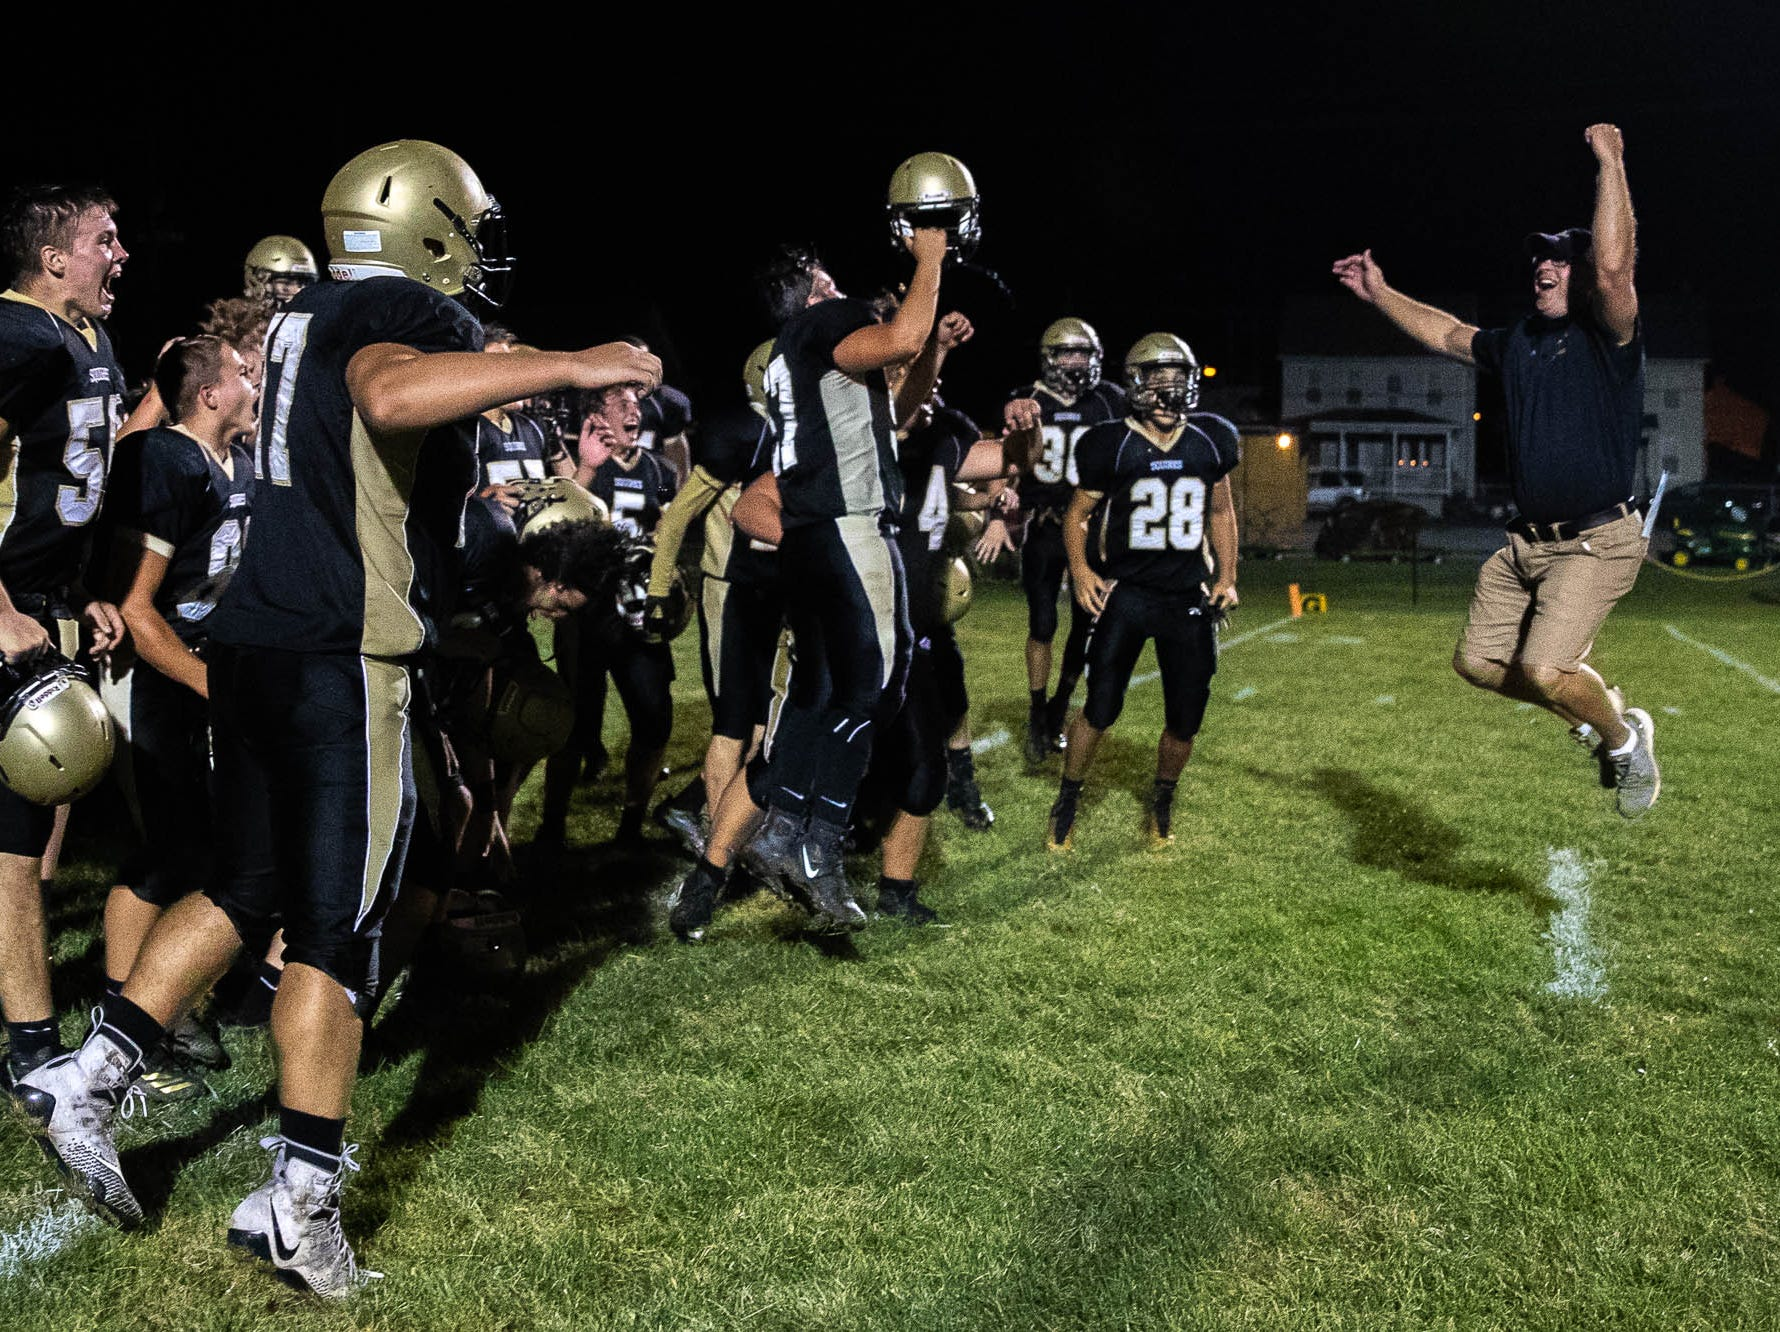 Delone Catholic defensive coordinator Dave Staub leaps into the air with his team after winning a game against York Suburban, Friday, Aug. 31, 2018, at Delone Catholic High School in McSherrystown. Delone beat York Suburban 62-0.